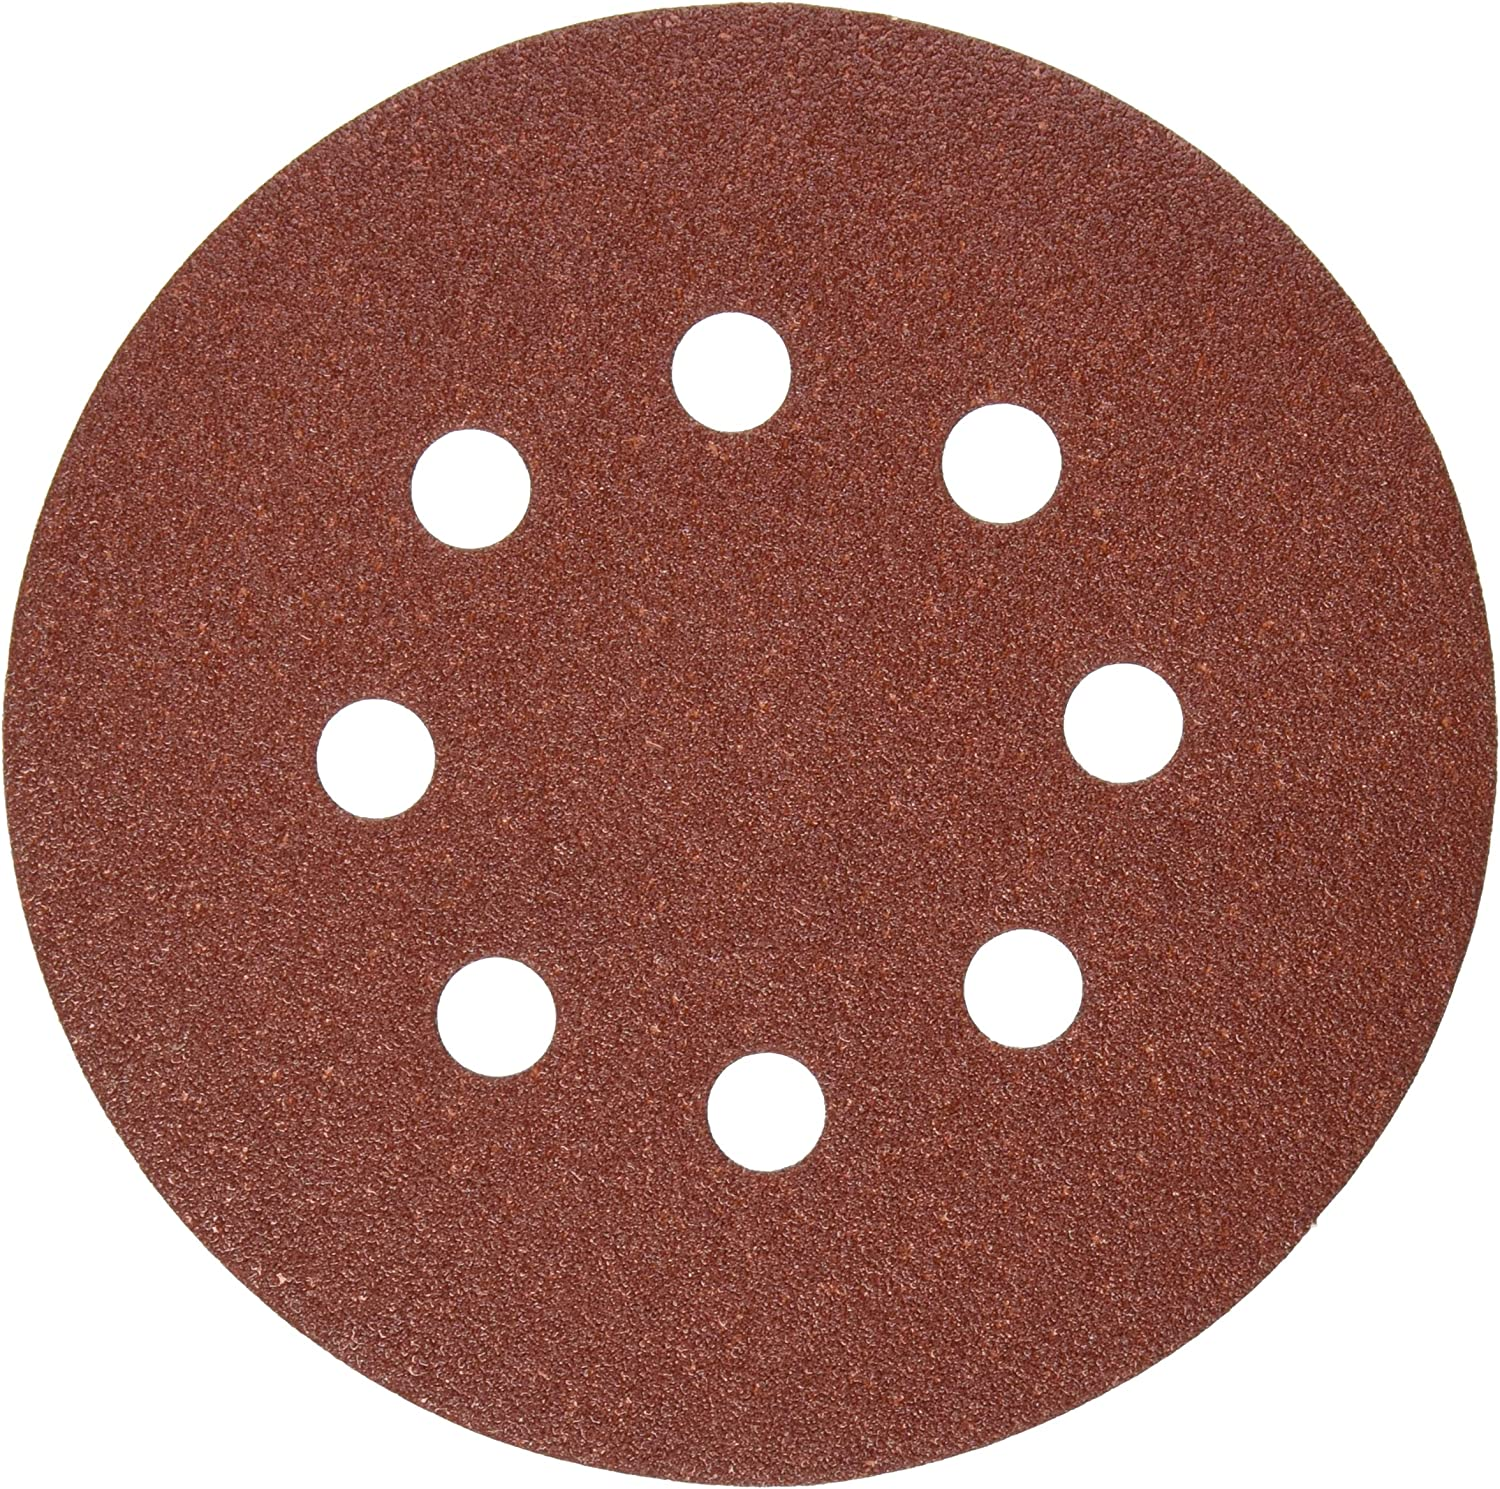 8 Hole Hook and Loop Backing 100 pack Sanding Discs 5 Inch 100 GRIT